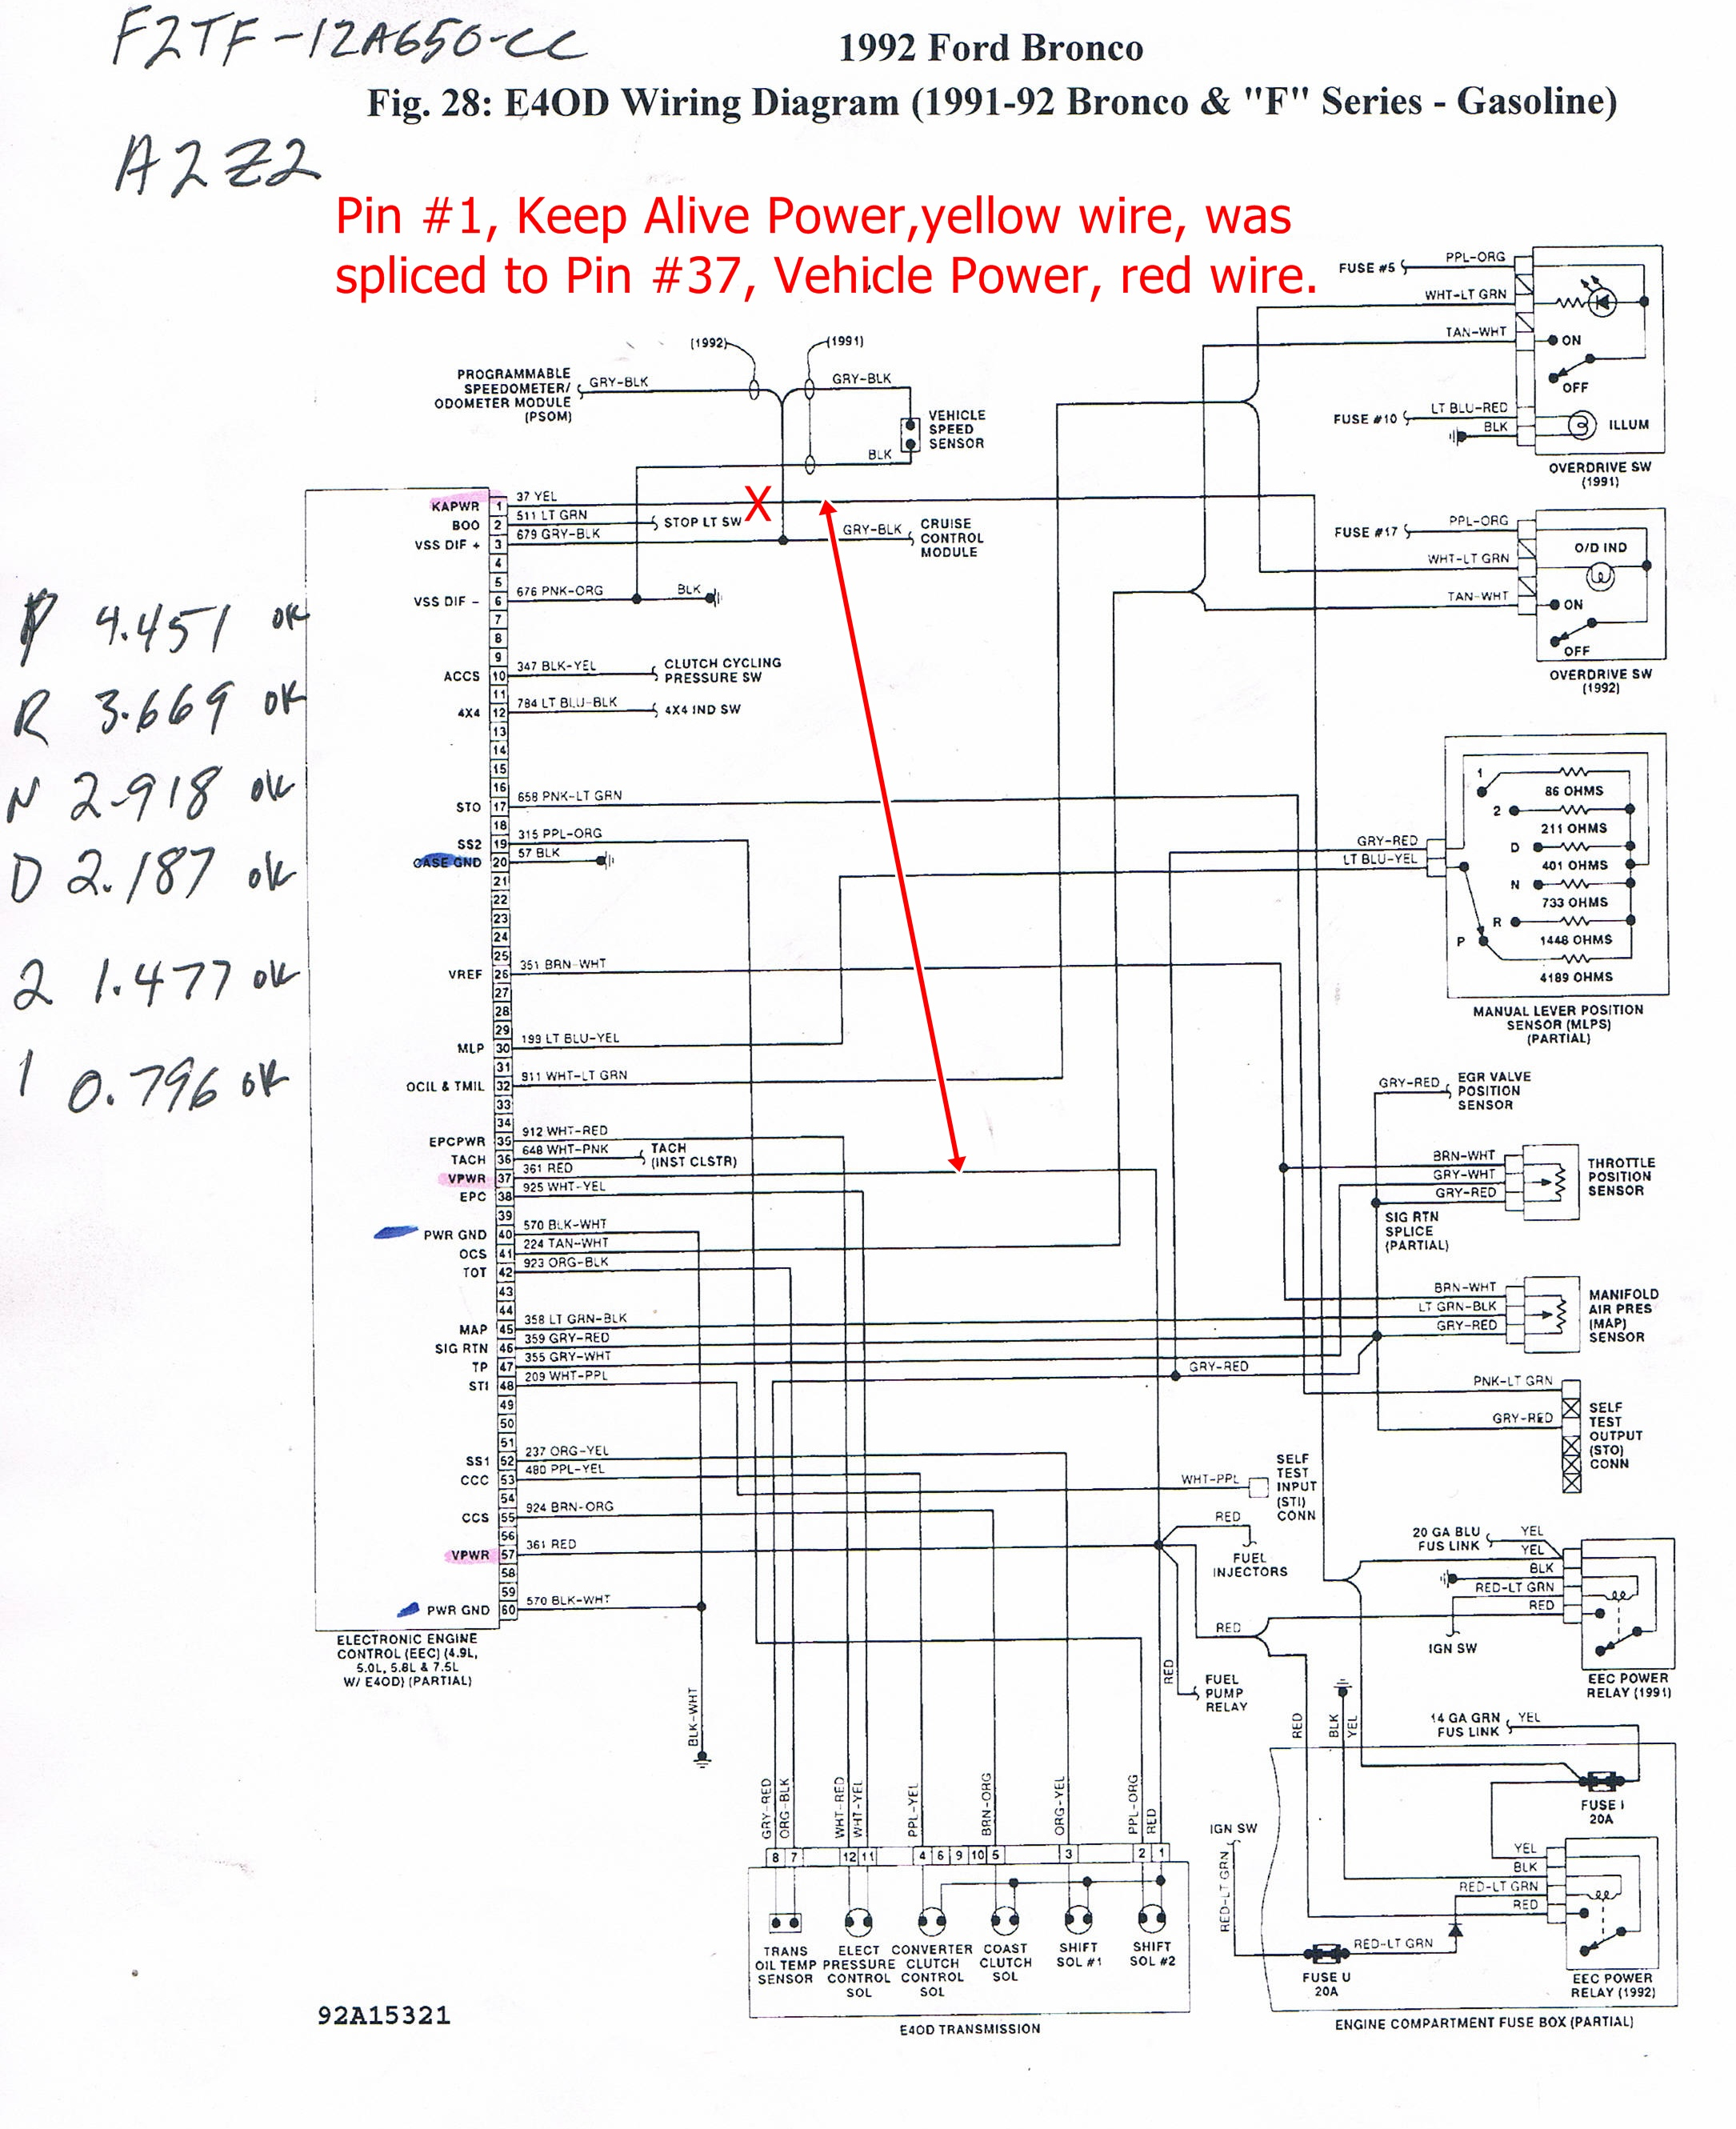 2003 volvo truck wire diagram wiring diagrams scematic rh 84 jessicadonath de 1998 Volvo S70 Fuse Box Diagram 1999 Volvo S70 Wiring-Diagram